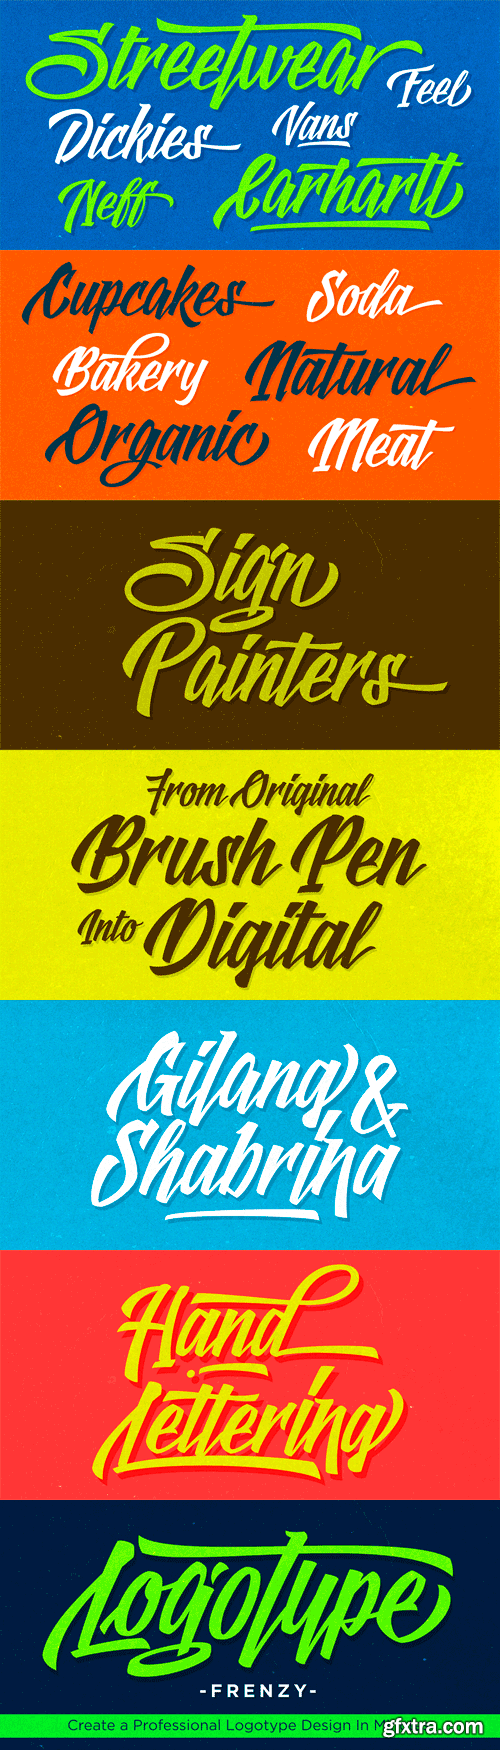 Logotype Frenzy Font for $40